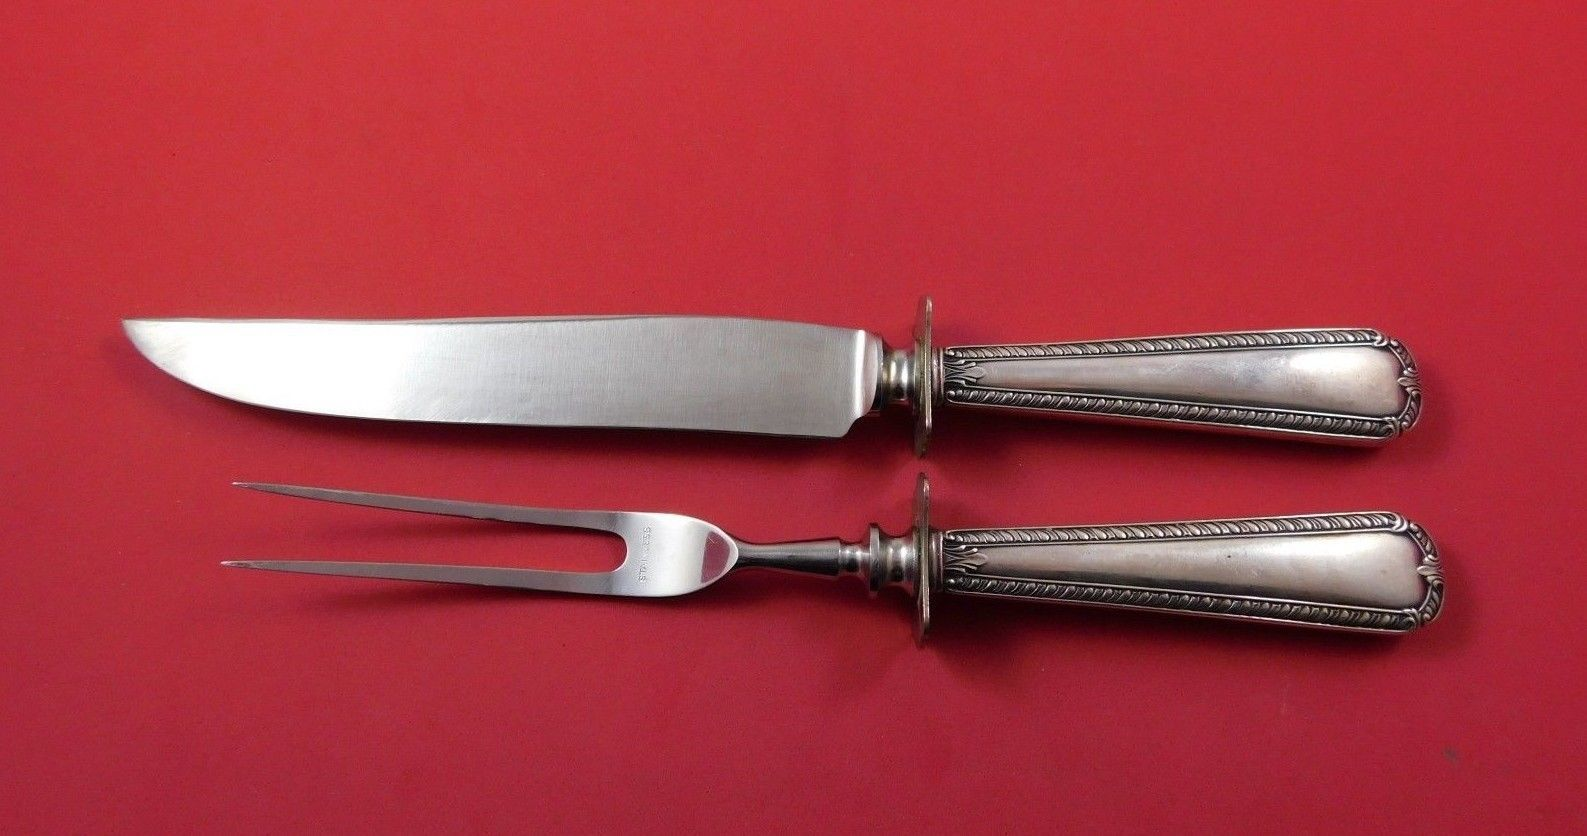 Primary image for SSMC-Saart Sterling Silver Steak Carving Set 2pc HH WS